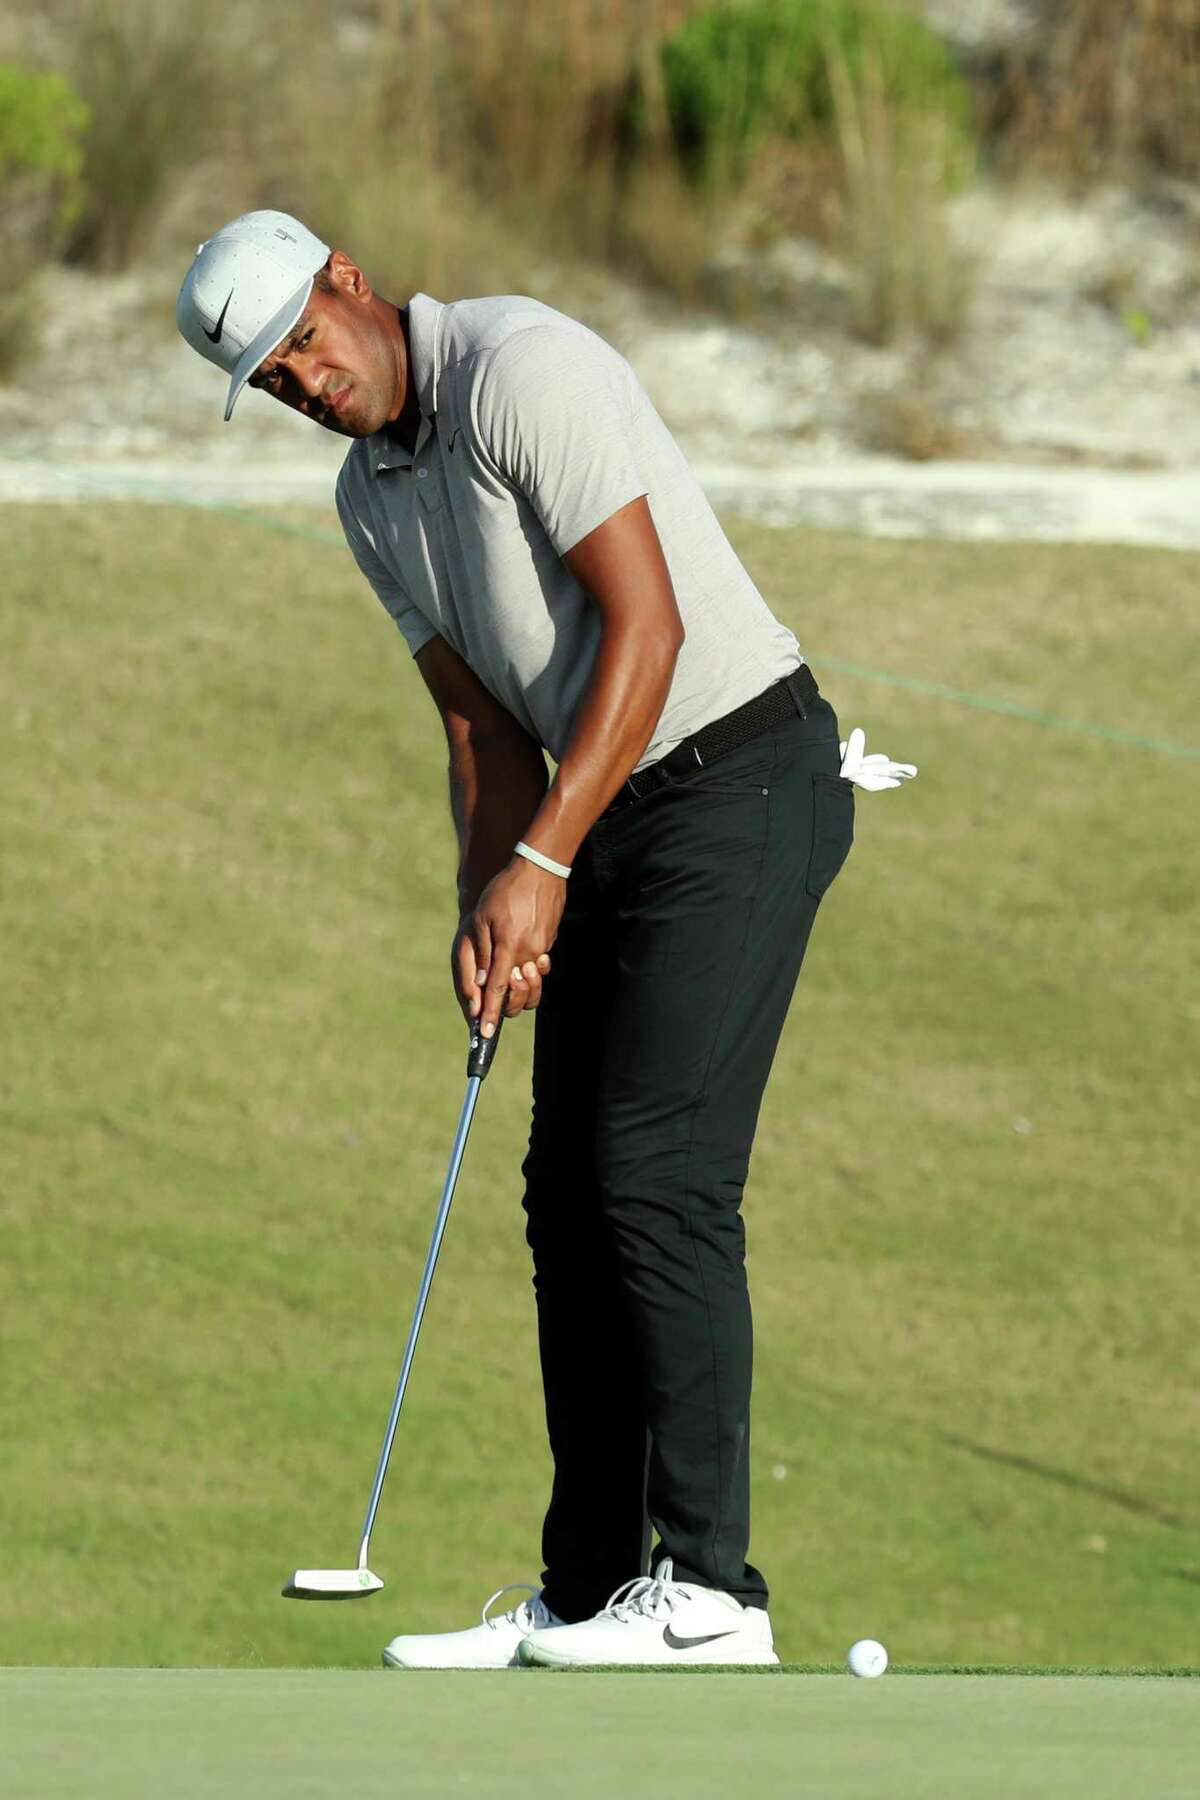 NASSAU, BAHAMAS - DECEMBER 01: Tony Finau of the United States putts on the 16th green during round three of the Hero World Challenge at Albany, Bahamas on December 01, 2018 in Nassau, Bahamas. (Photo by Rob Carr/Getty Images)